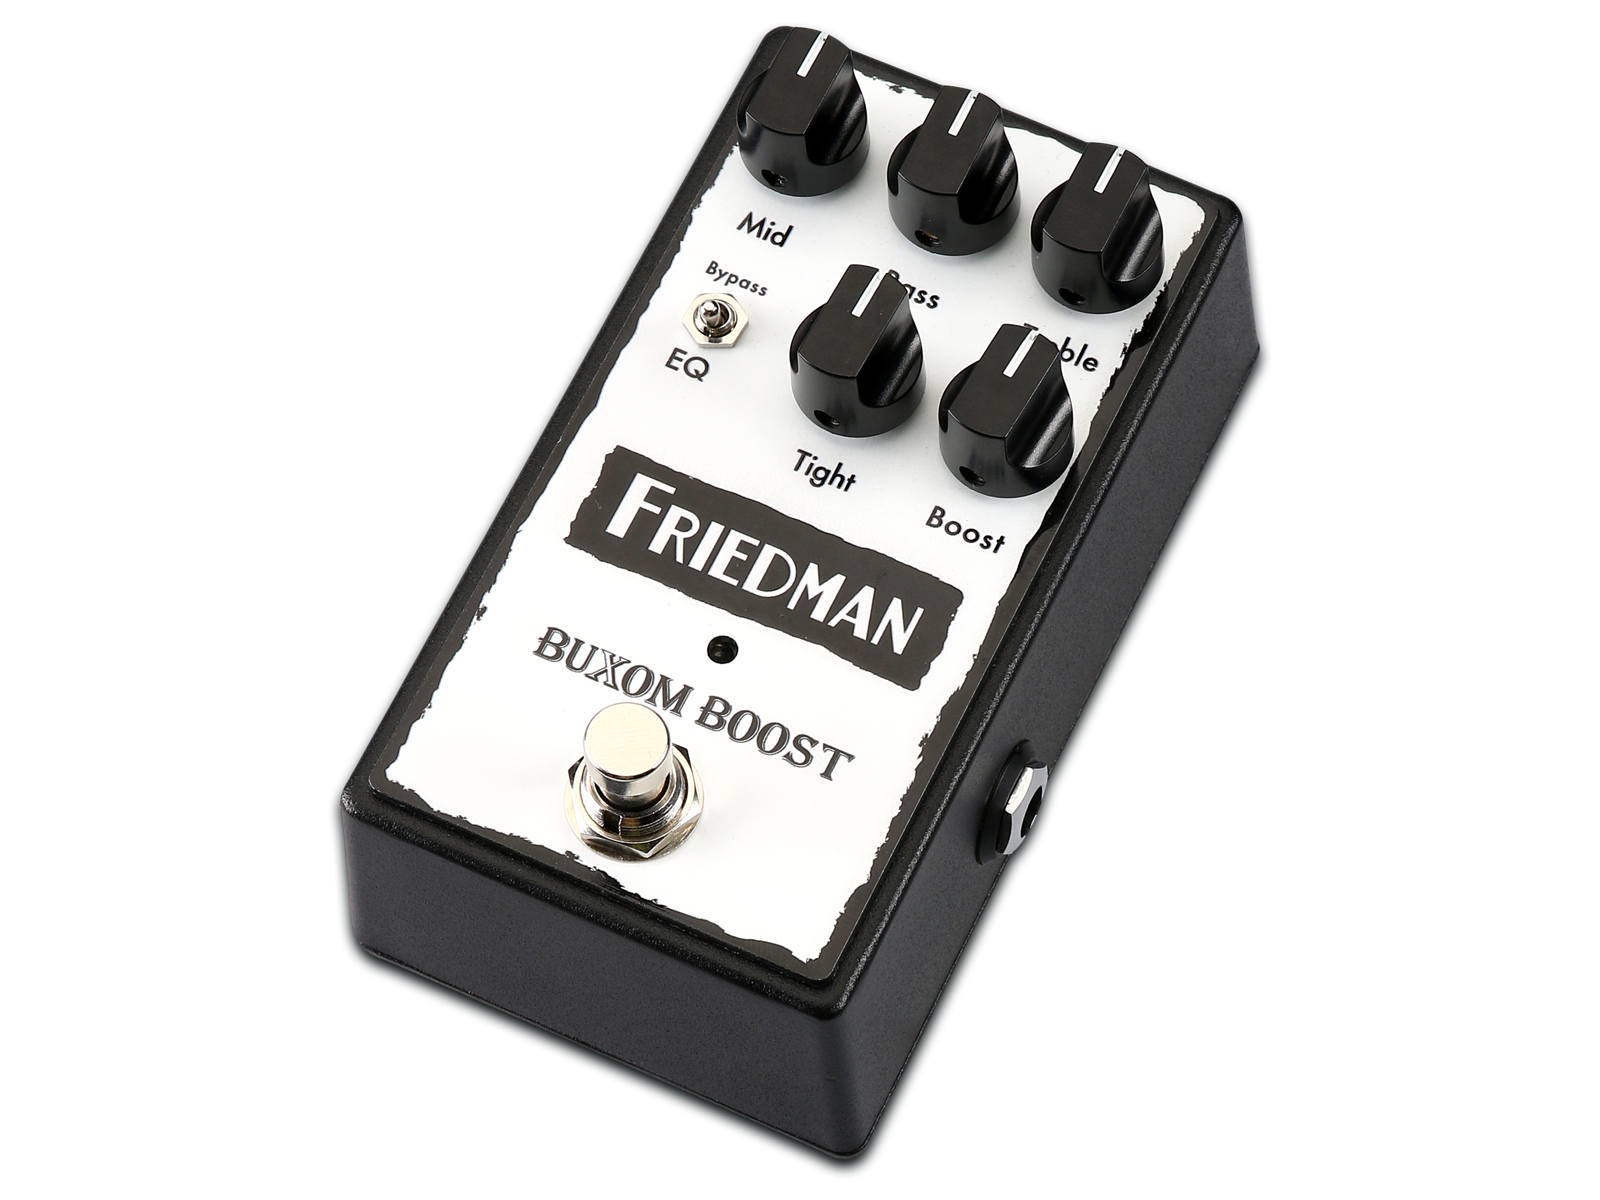 friedman amplification buxom boost pedal. Black Bedroom Furniture Sets. Home Design Ideas